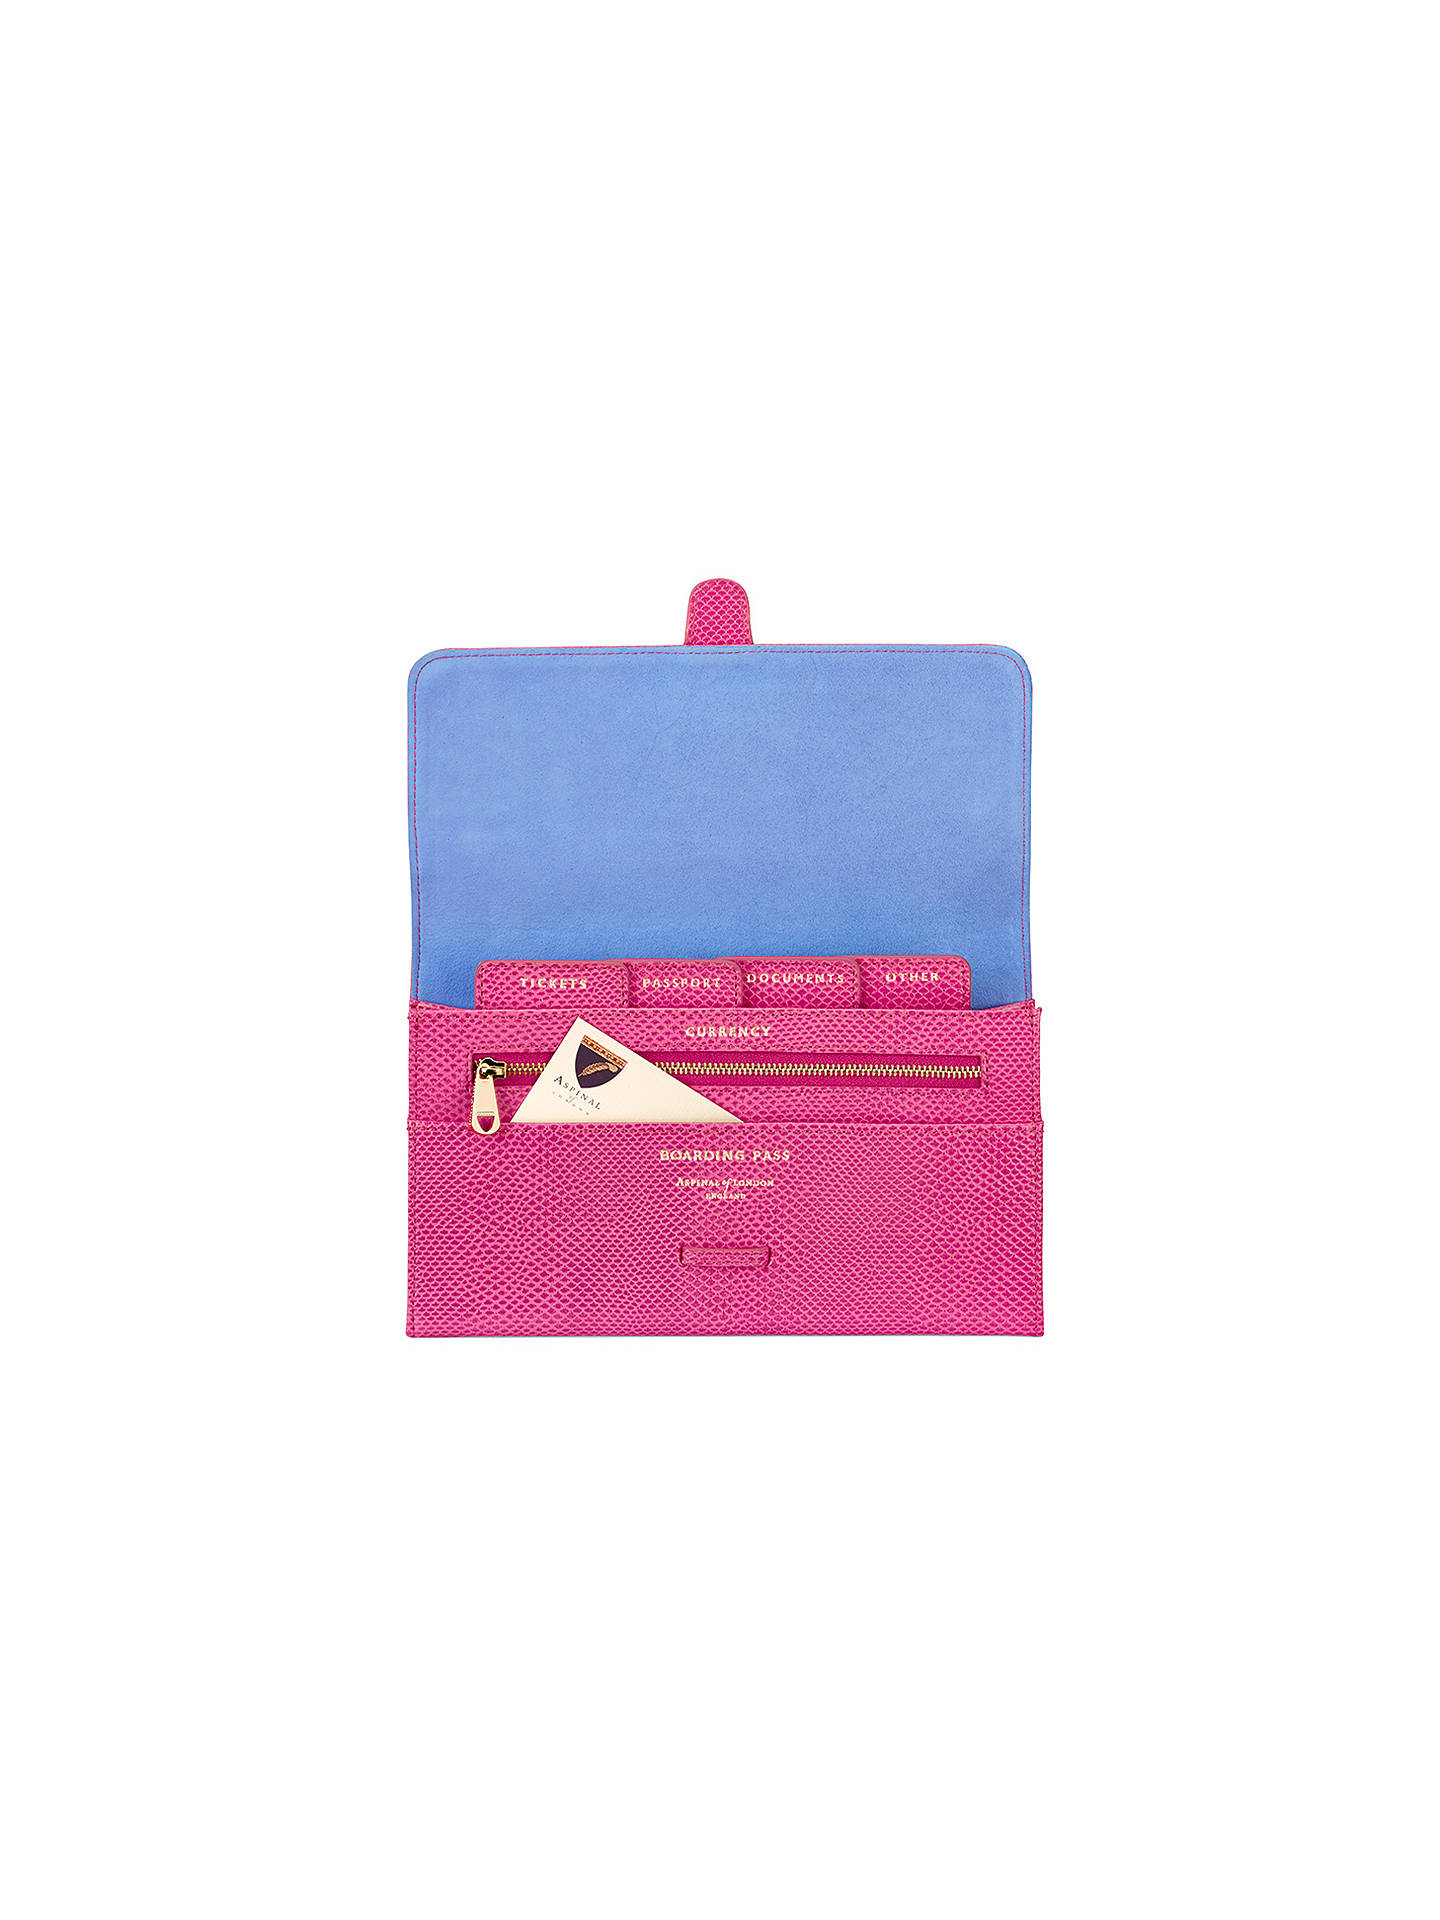 john lewis travel document holder